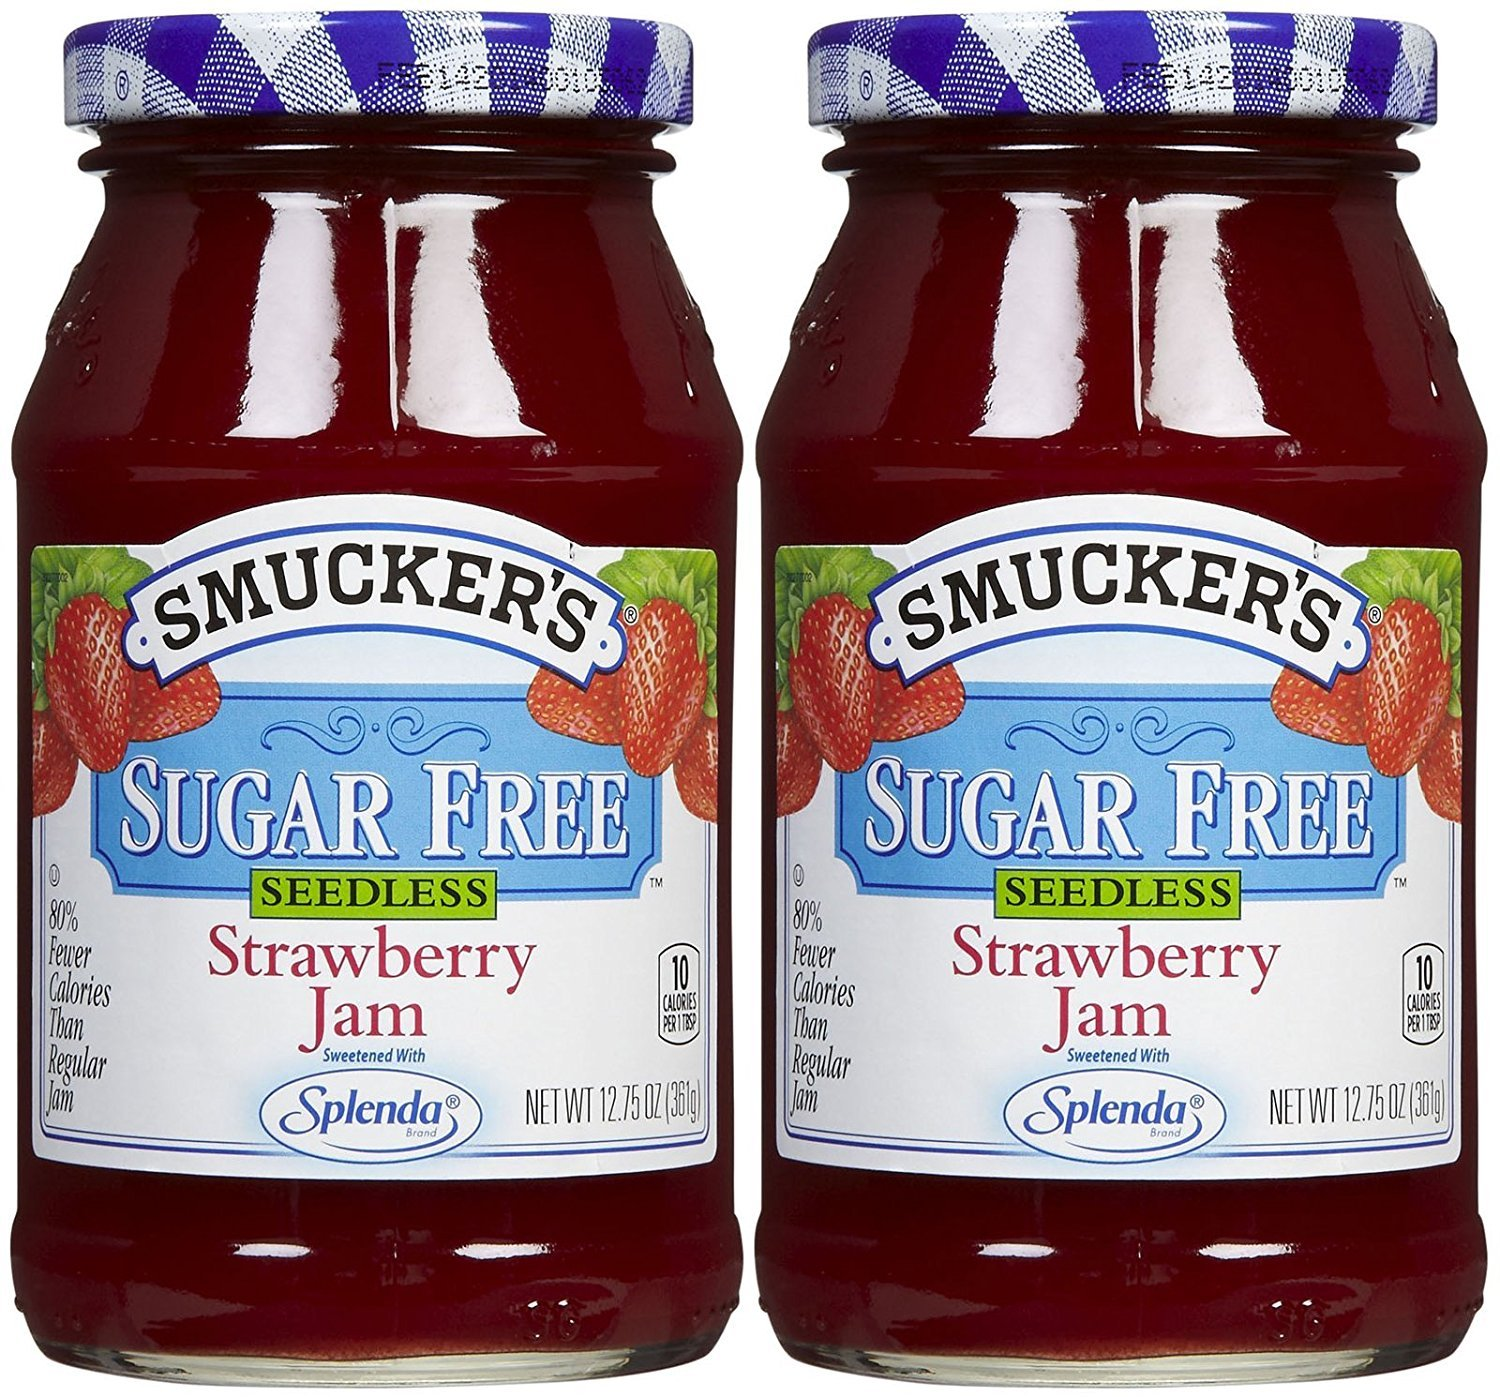 Smucker's Sugar Free Seedless Strawberry Jam, 12.75 oz, 2 pk